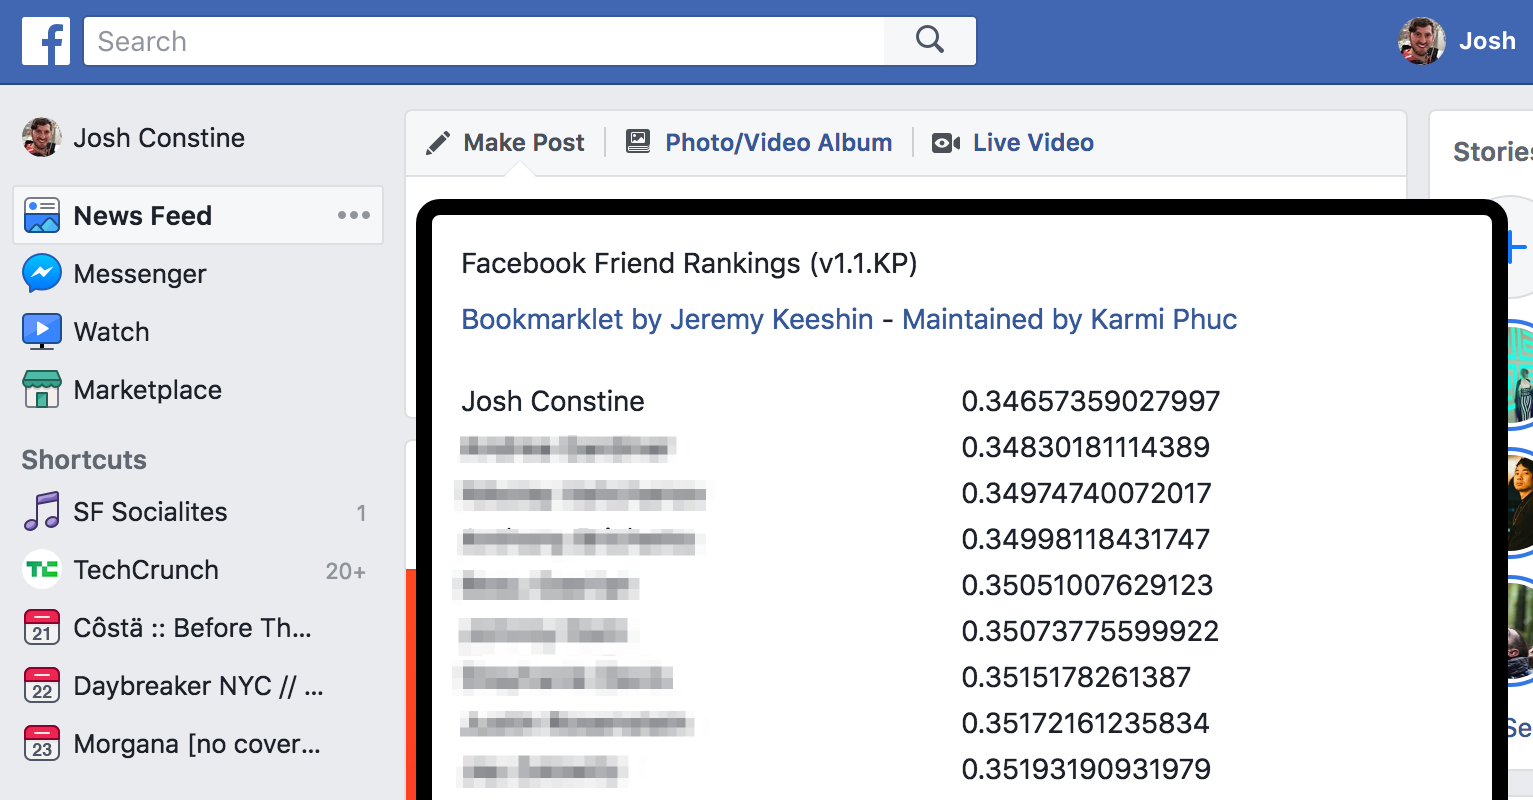 Https 2018 08 20 What Happens When Hackers Steal Wiring Diagram Symbols Embraer Facebook Score Friend Ranking